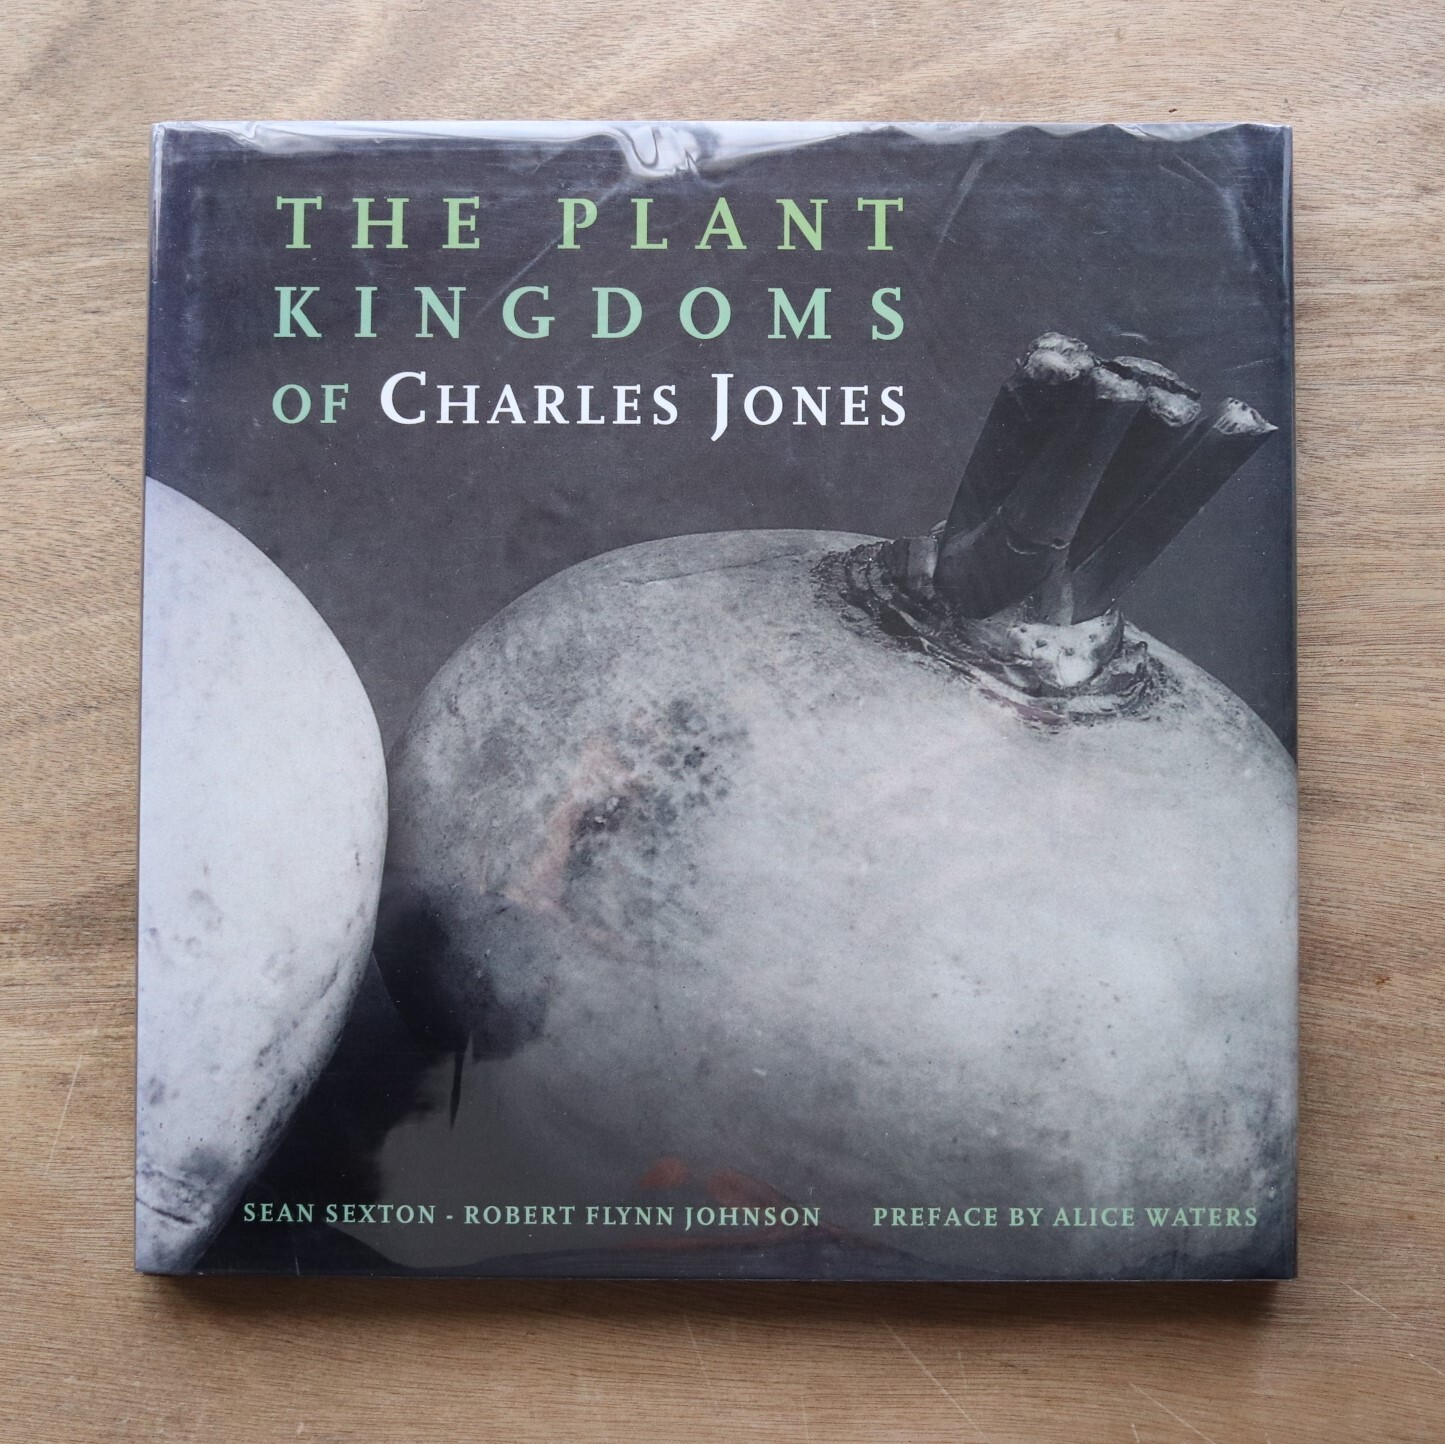 The Plant Kingdoms of Charles Jones / Sean Sexton